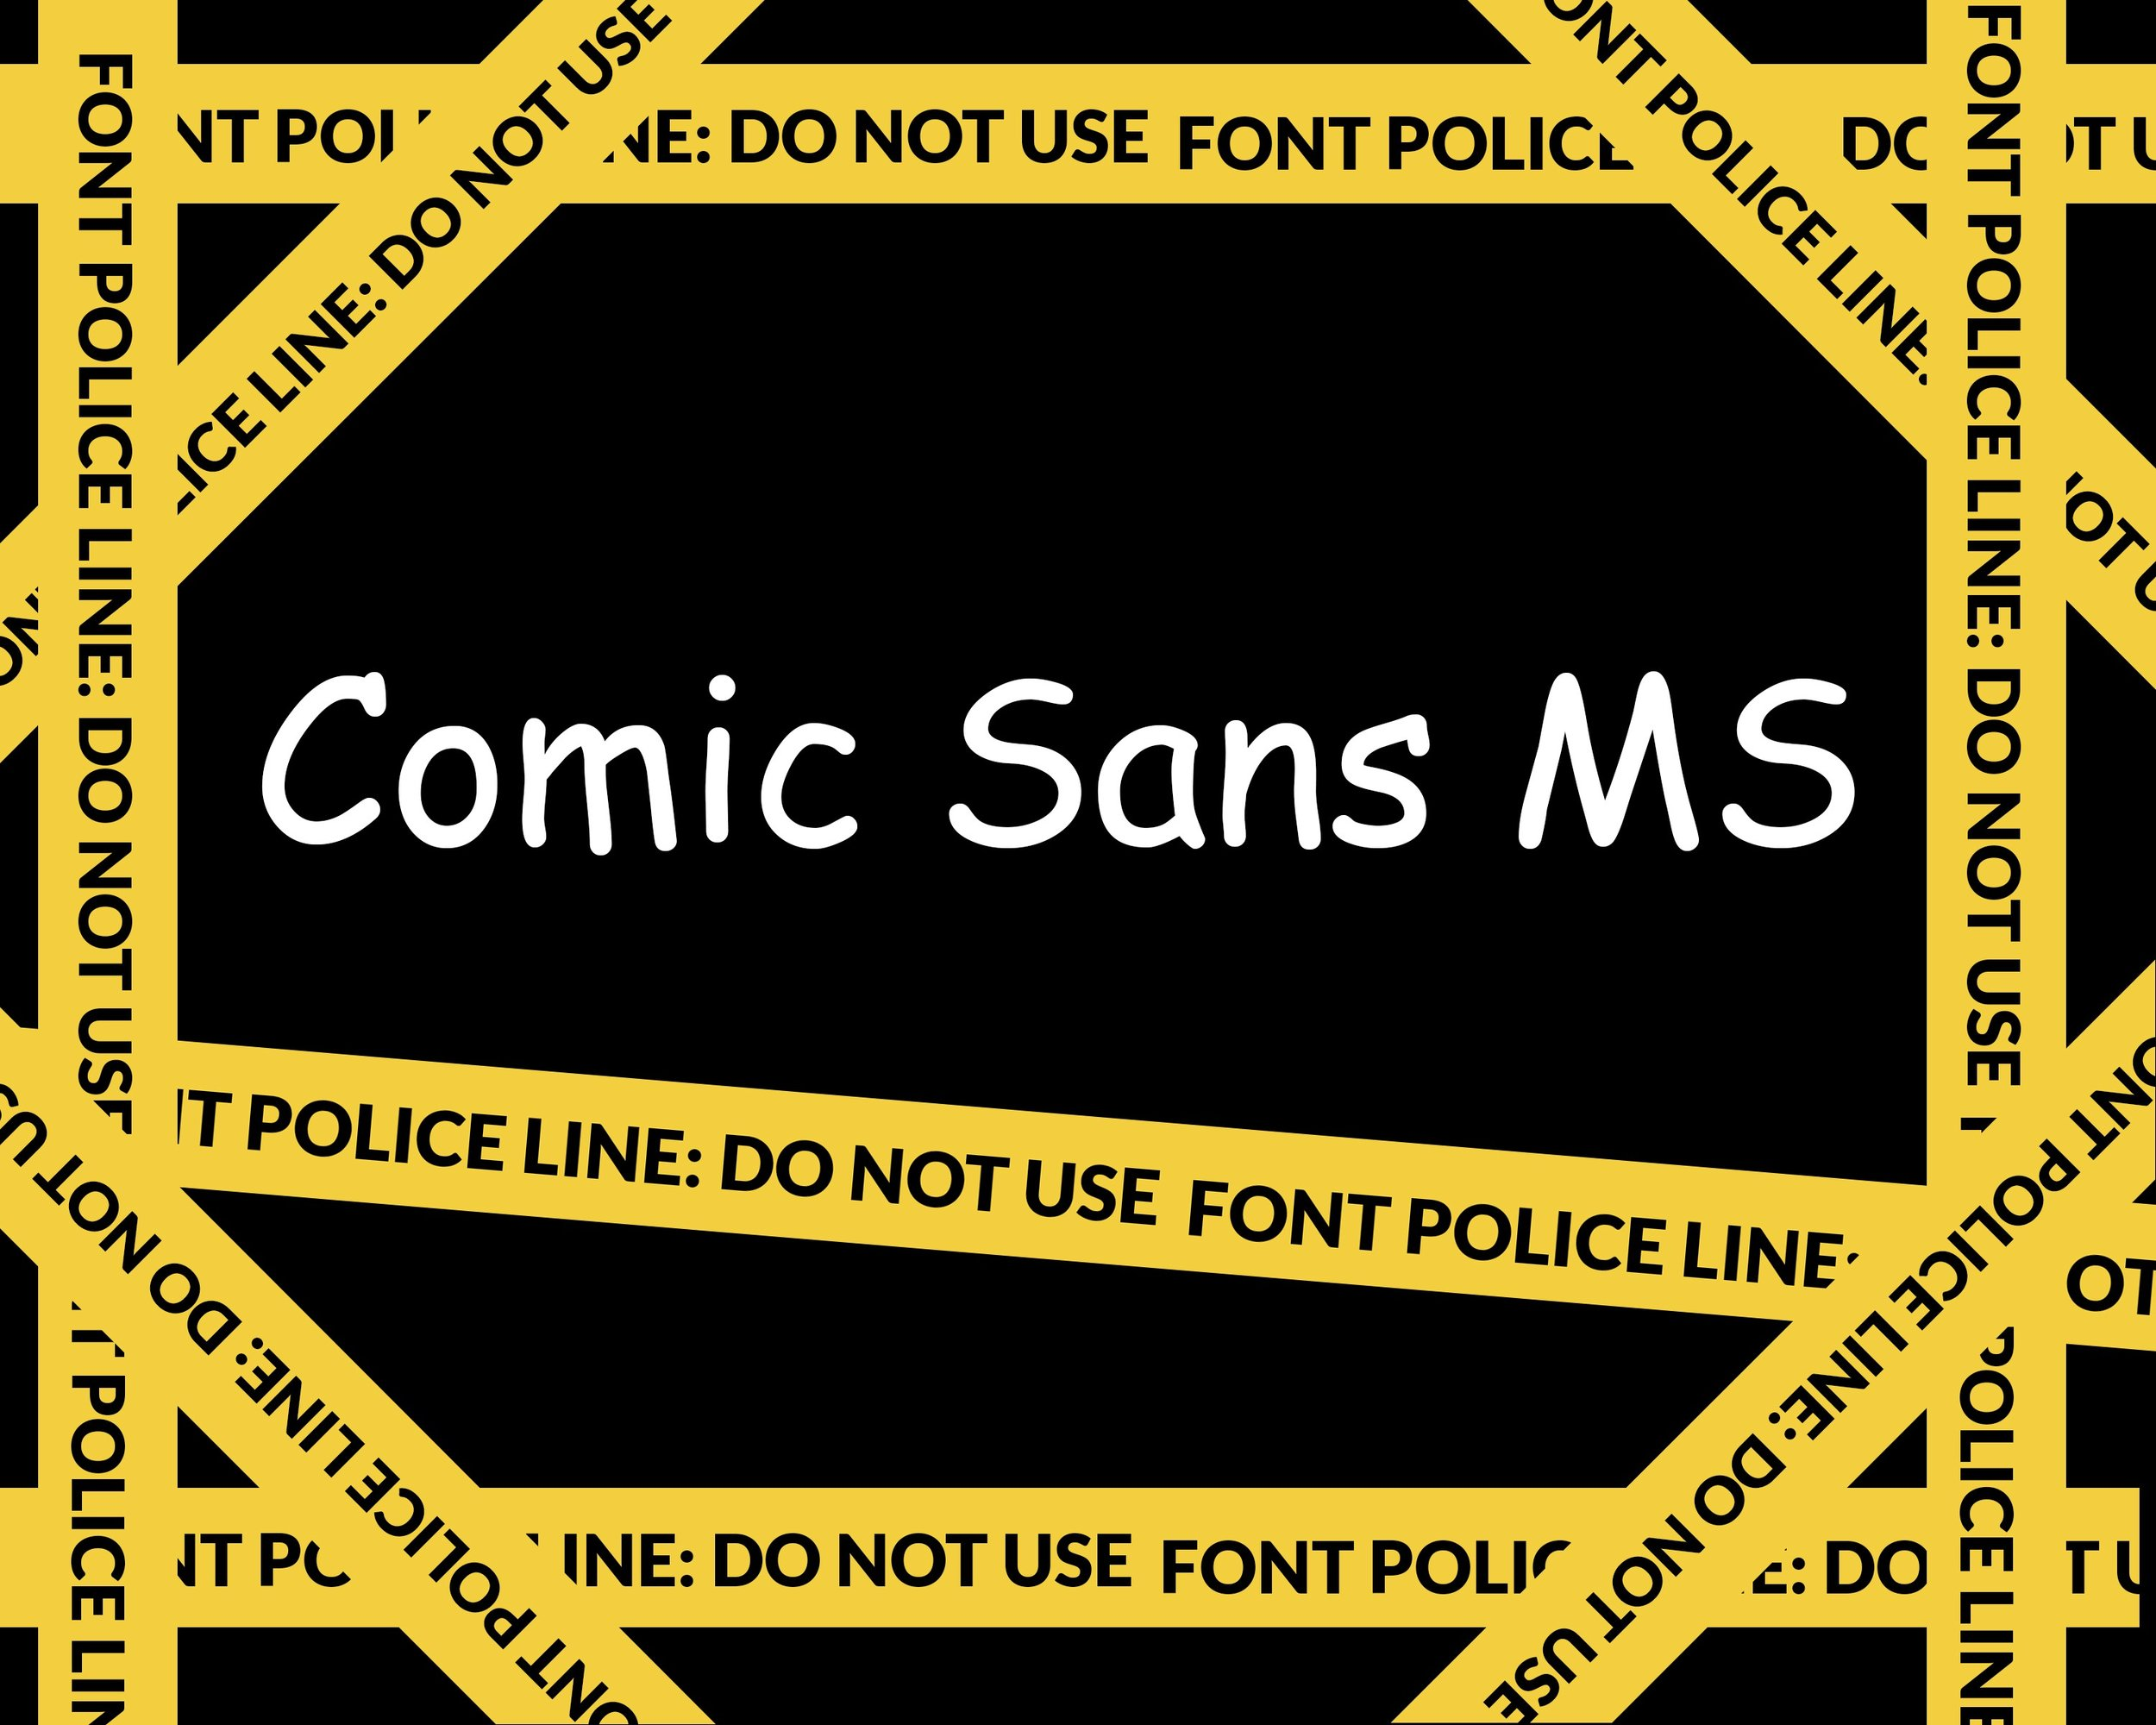 fonts-that-you-should-never-use01.jpg